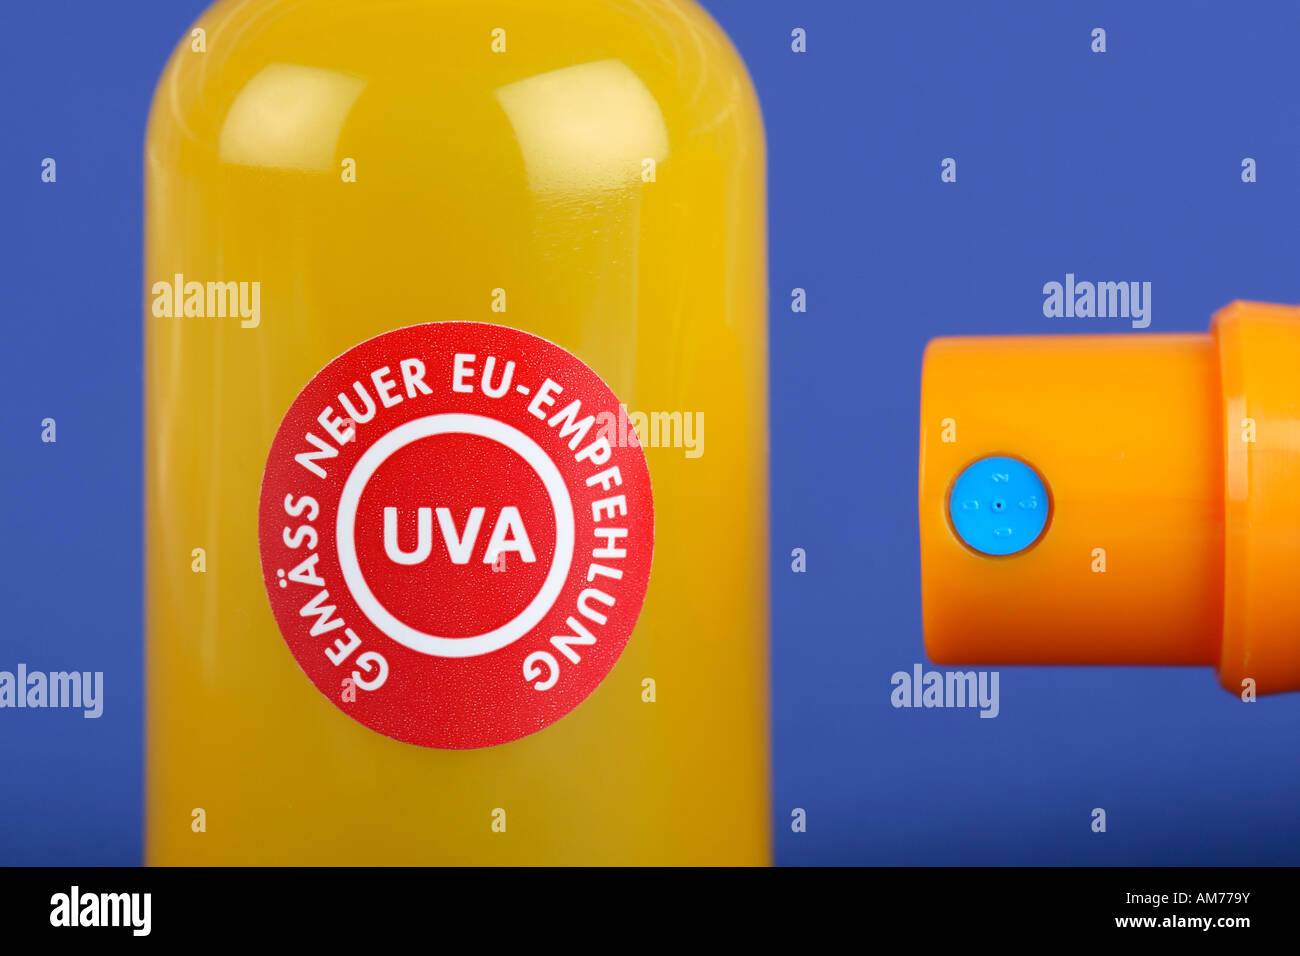 Sun protection suntan, detail, recommended by European Union regulation - Stock Image